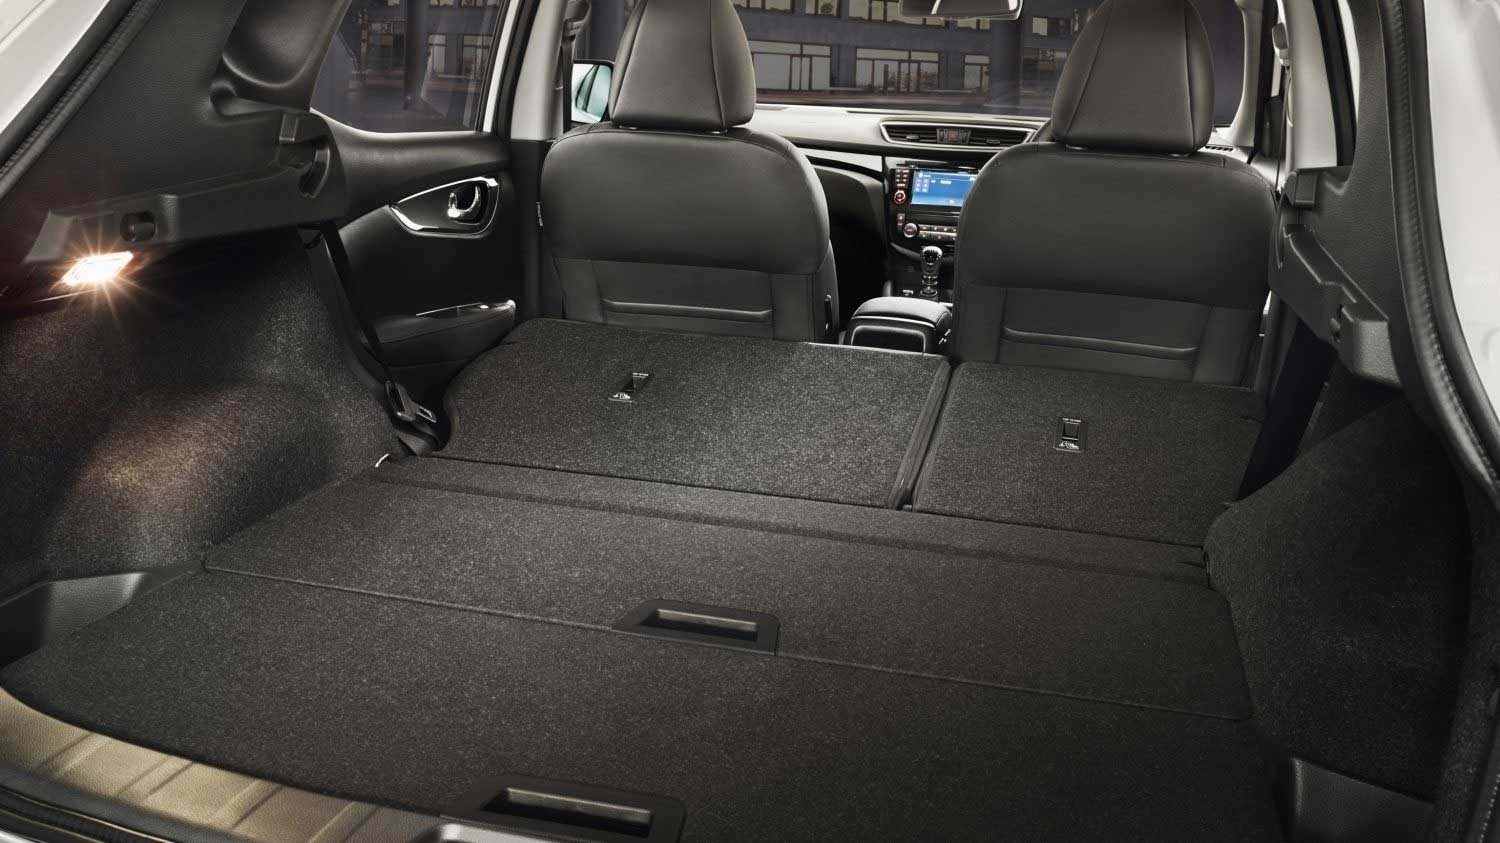 Cargo area shown with seats folded down